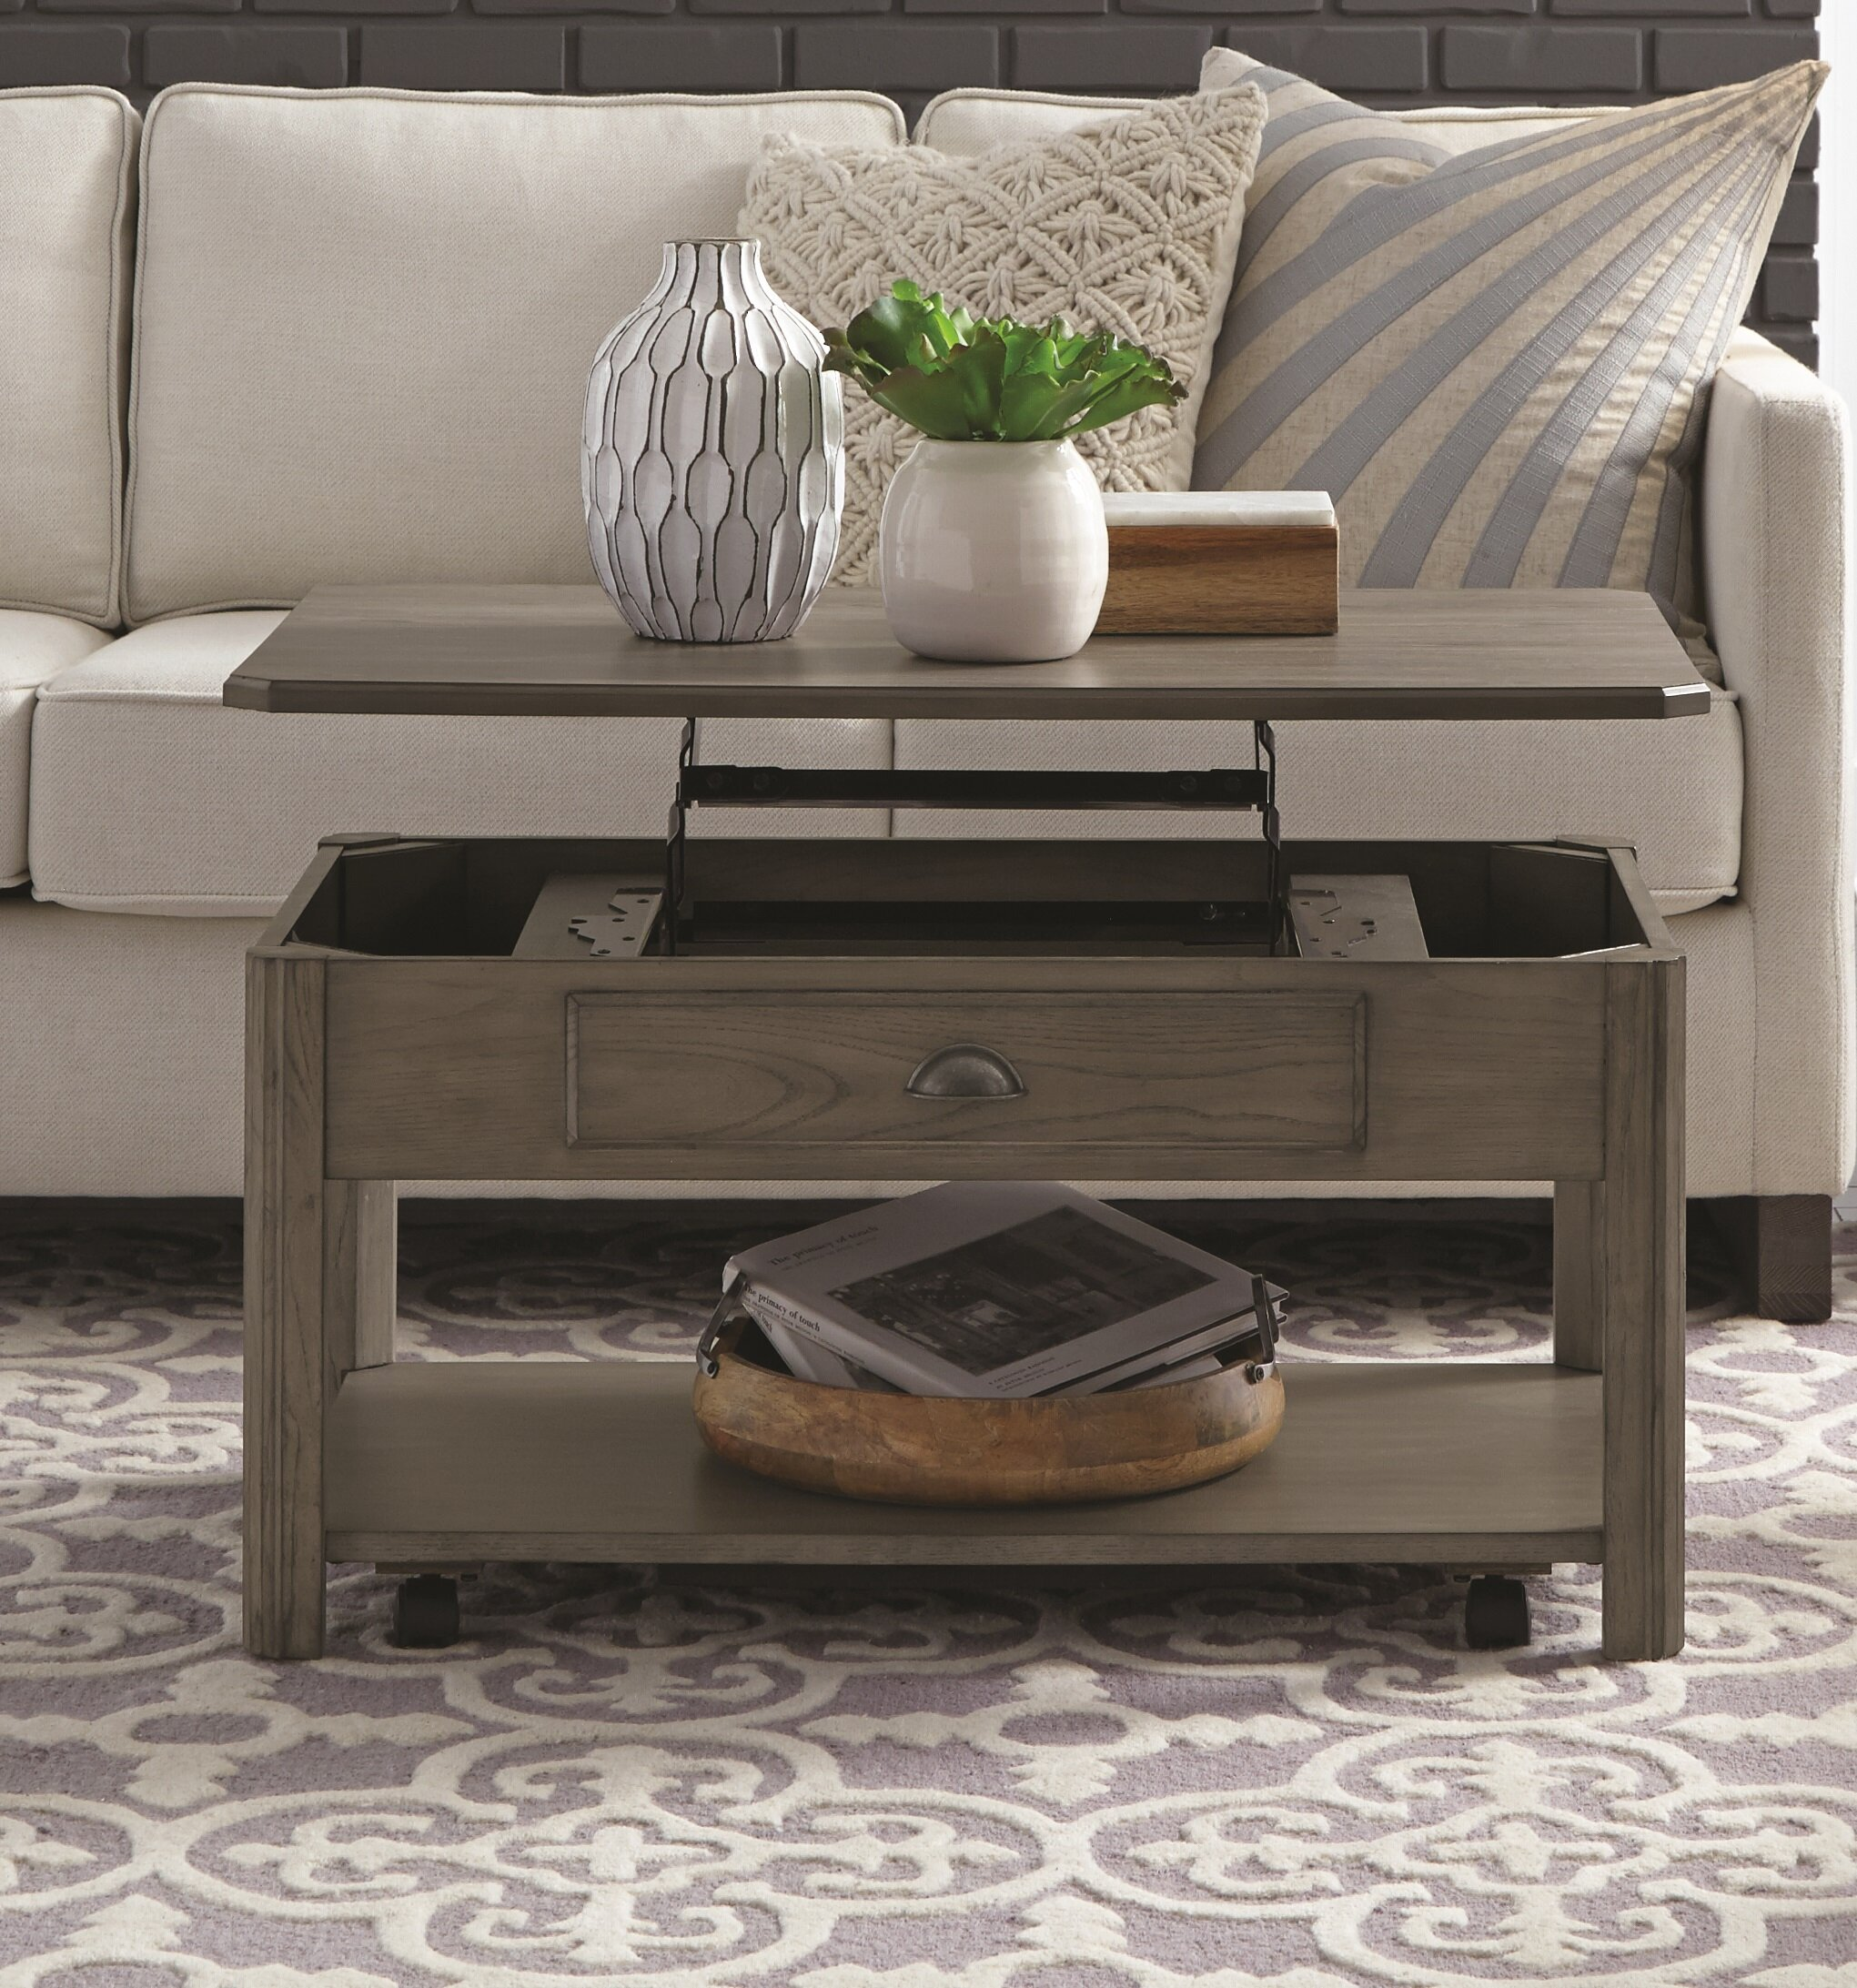 - Darby Home Co Fernville Lift-Top Coffee Table With Storage